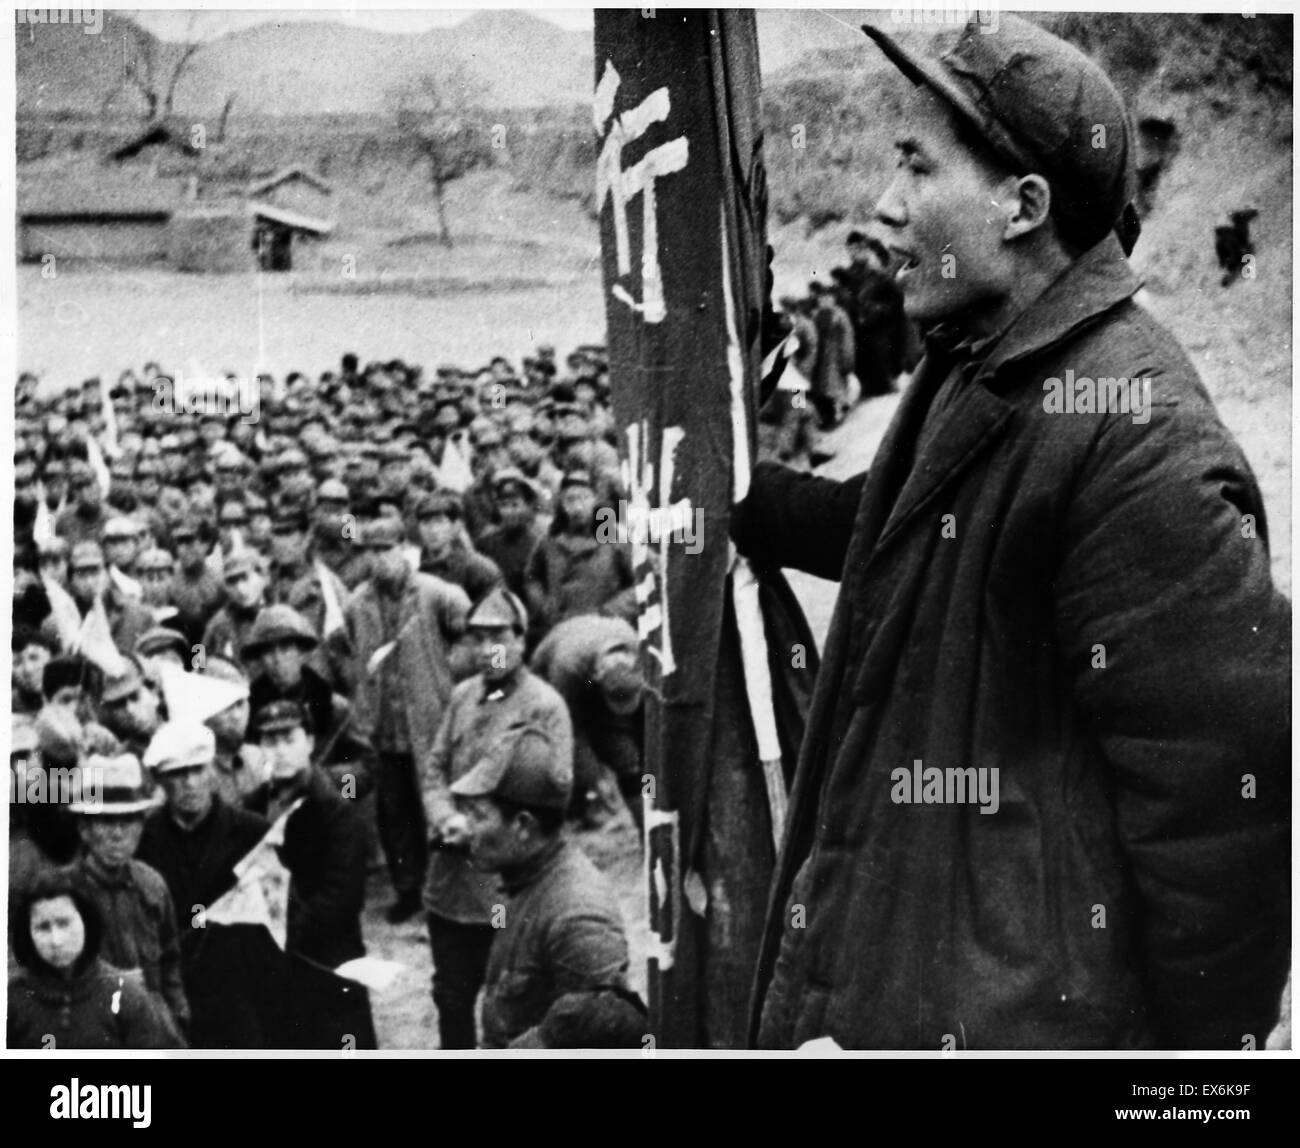 Mao Tse Tung, leader of China's Communists, addresses followers at Yenan during the long March 1937 - Stock Image